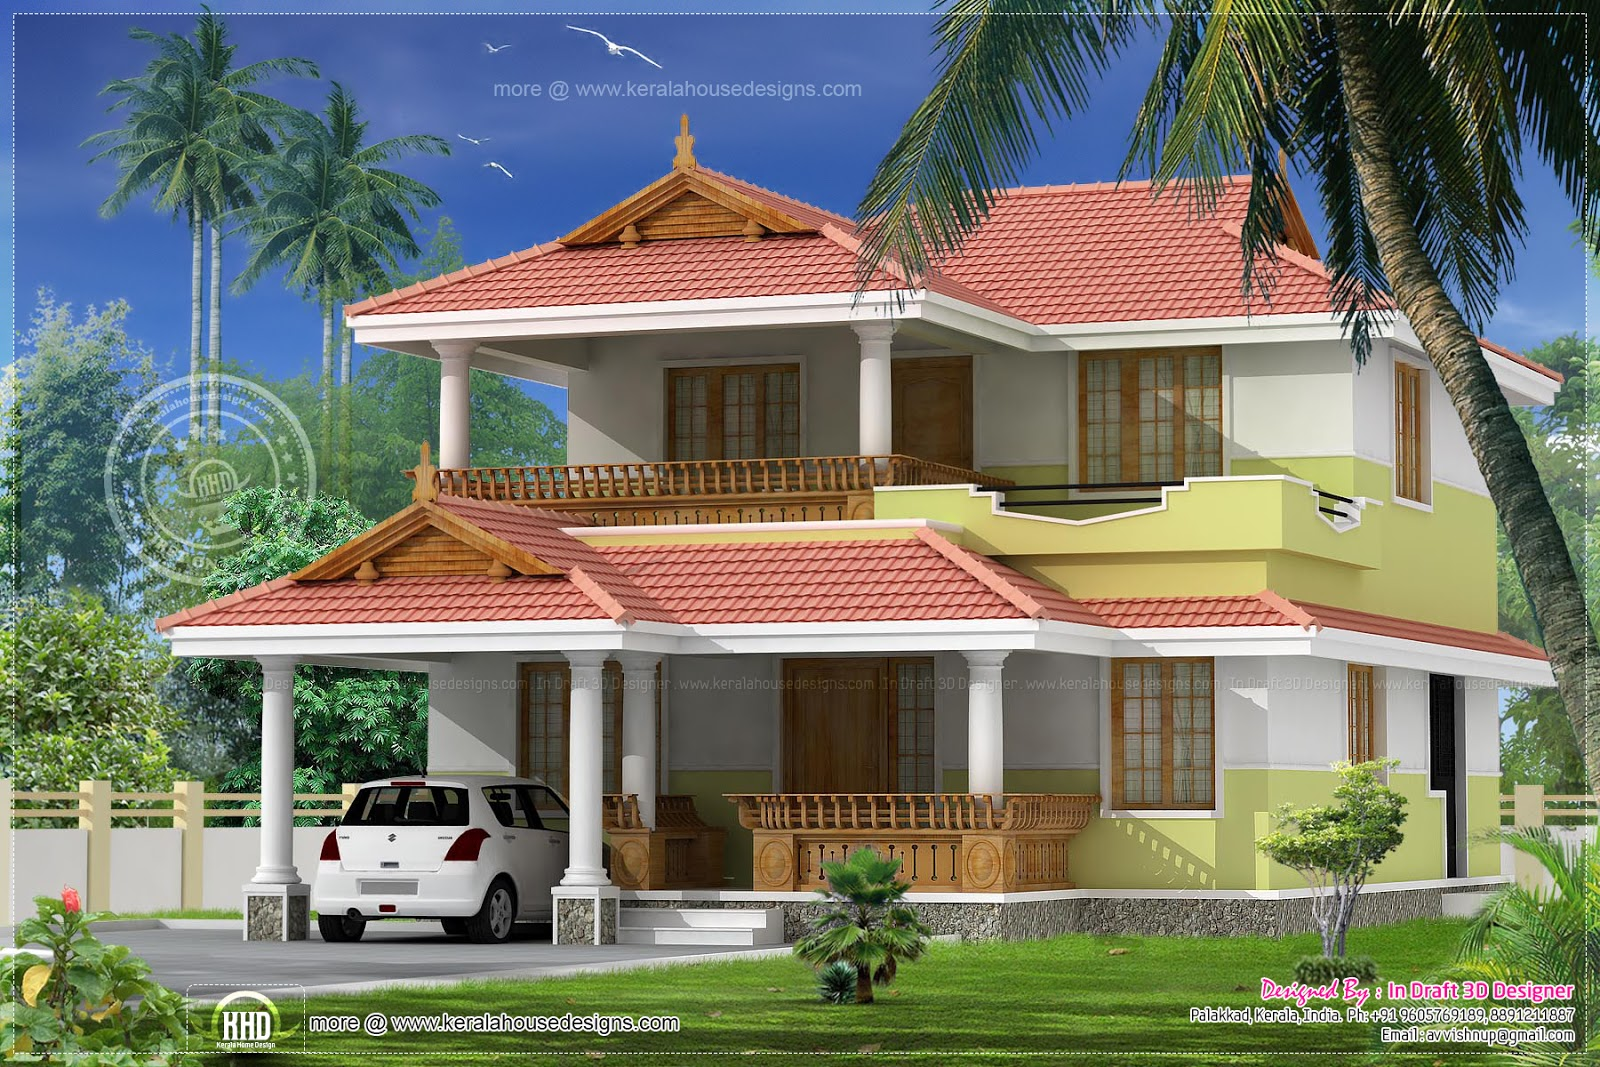 3 bed room traditional villa 1740 kerala home for Kerala house models photos